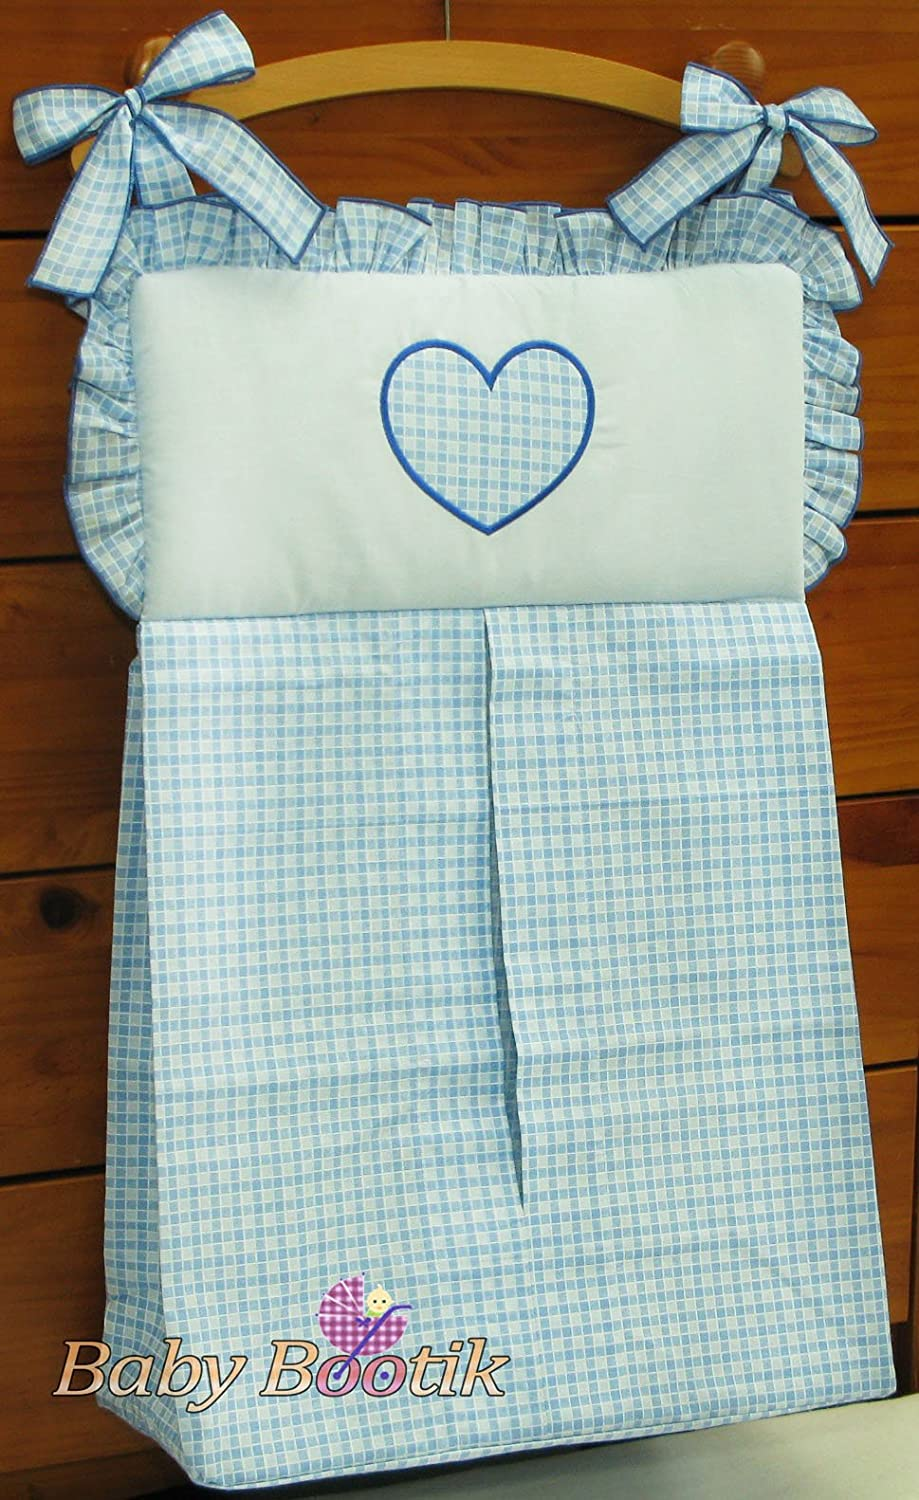 NAPPY STACKER/DIAPER BAG MATCH BABY NURSERY COT/COT BED BEDDING - HEARTS BLUE Babycomfort